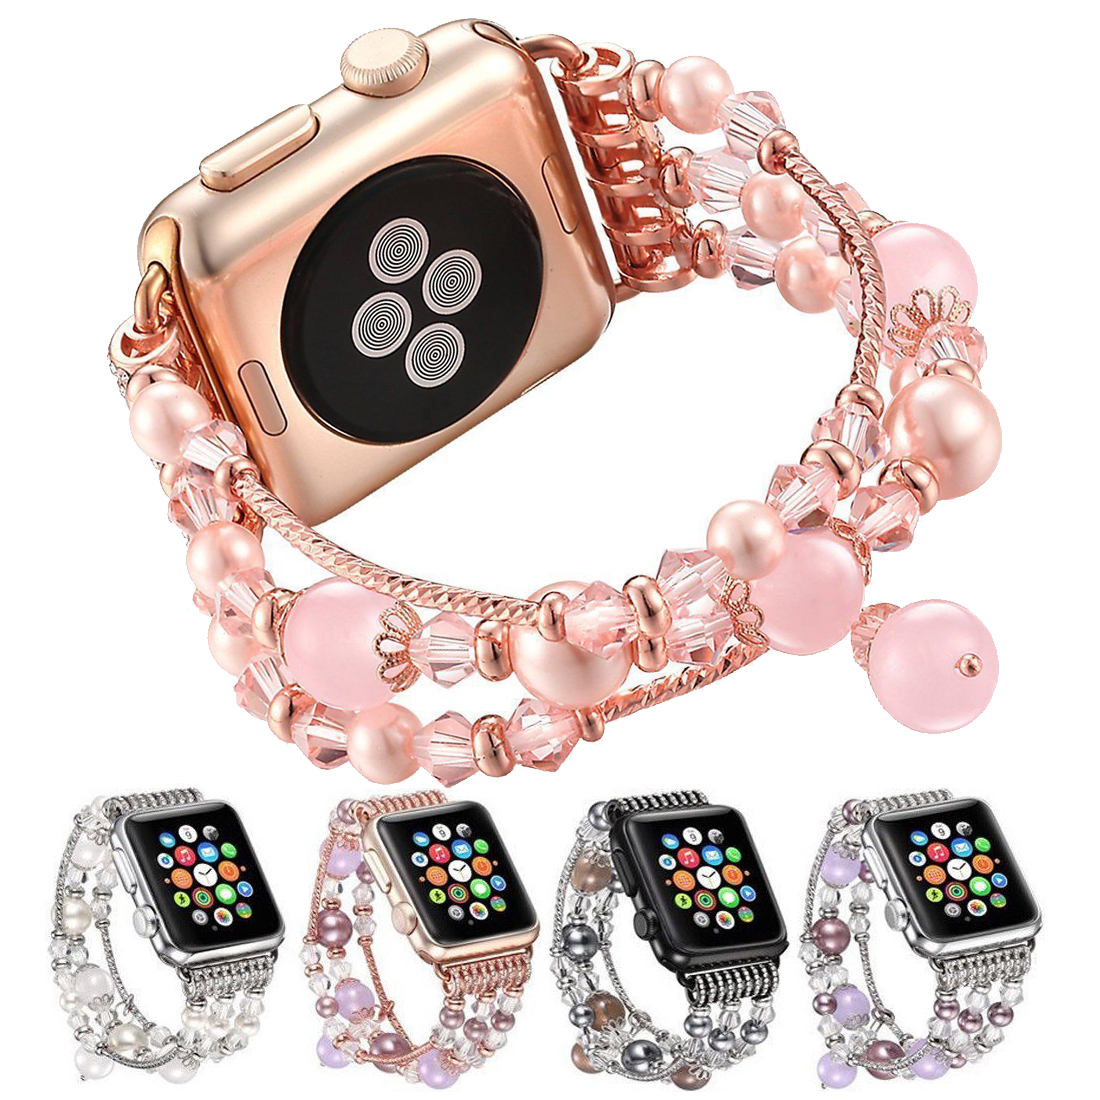 Essidi Agate Bracelet Strap For Apple Watch Series 5 4 3 2 1 Stretchable Bead 38 40 42 44 MM Watch Band Clasp For Iwatch Series